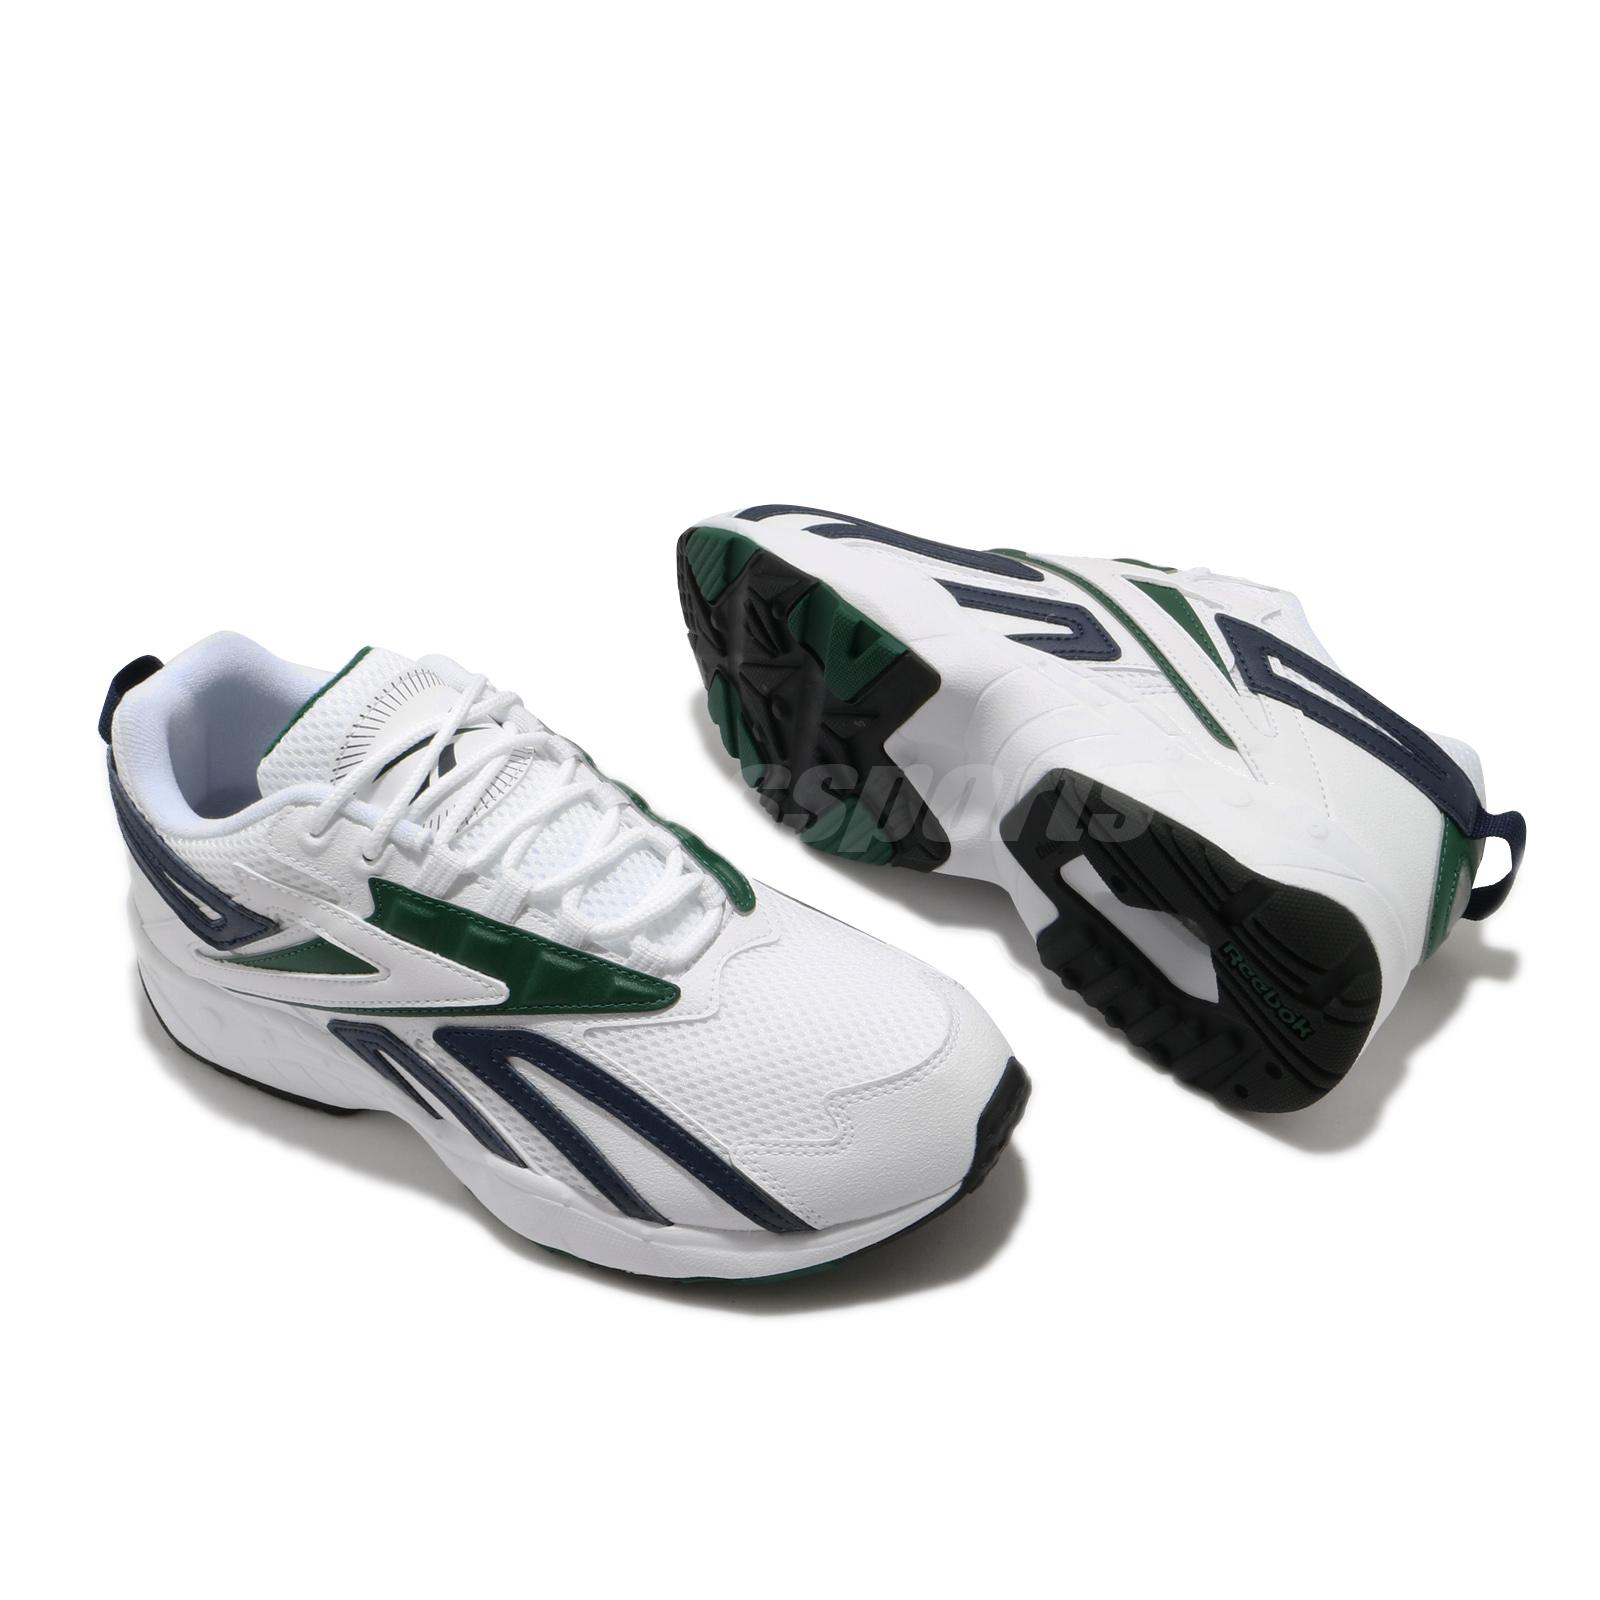 Details about  /Reebok Intv Logo Interval Double Black Green White Men Running Shoes FY1299